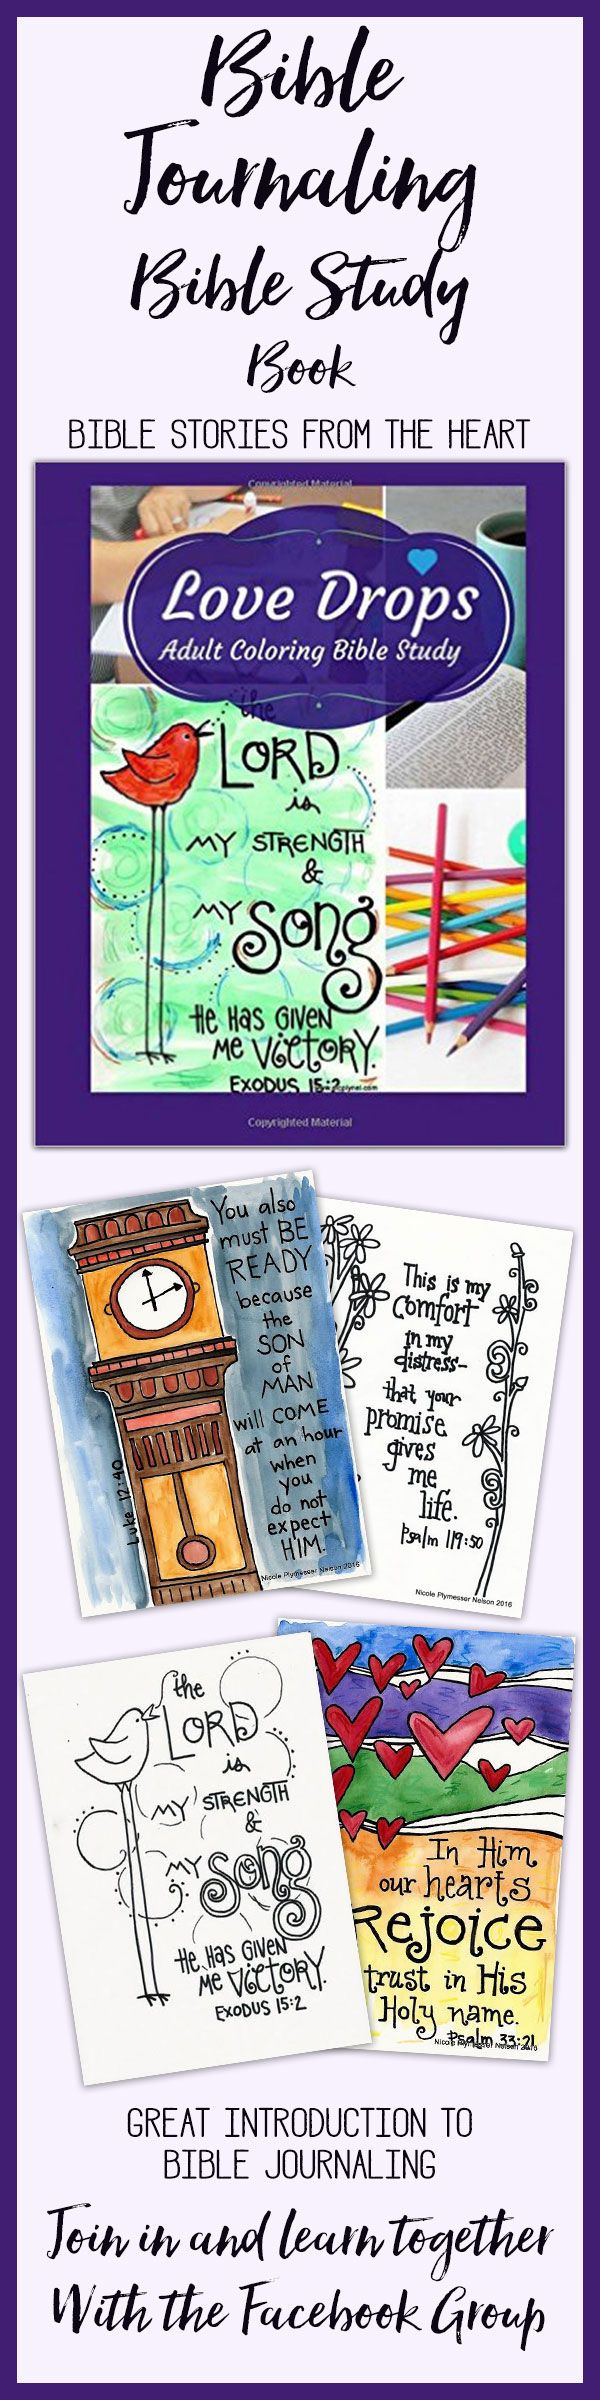 Another neat devotional coloring book from Leslie Eaton #Biblejournaling #coloring